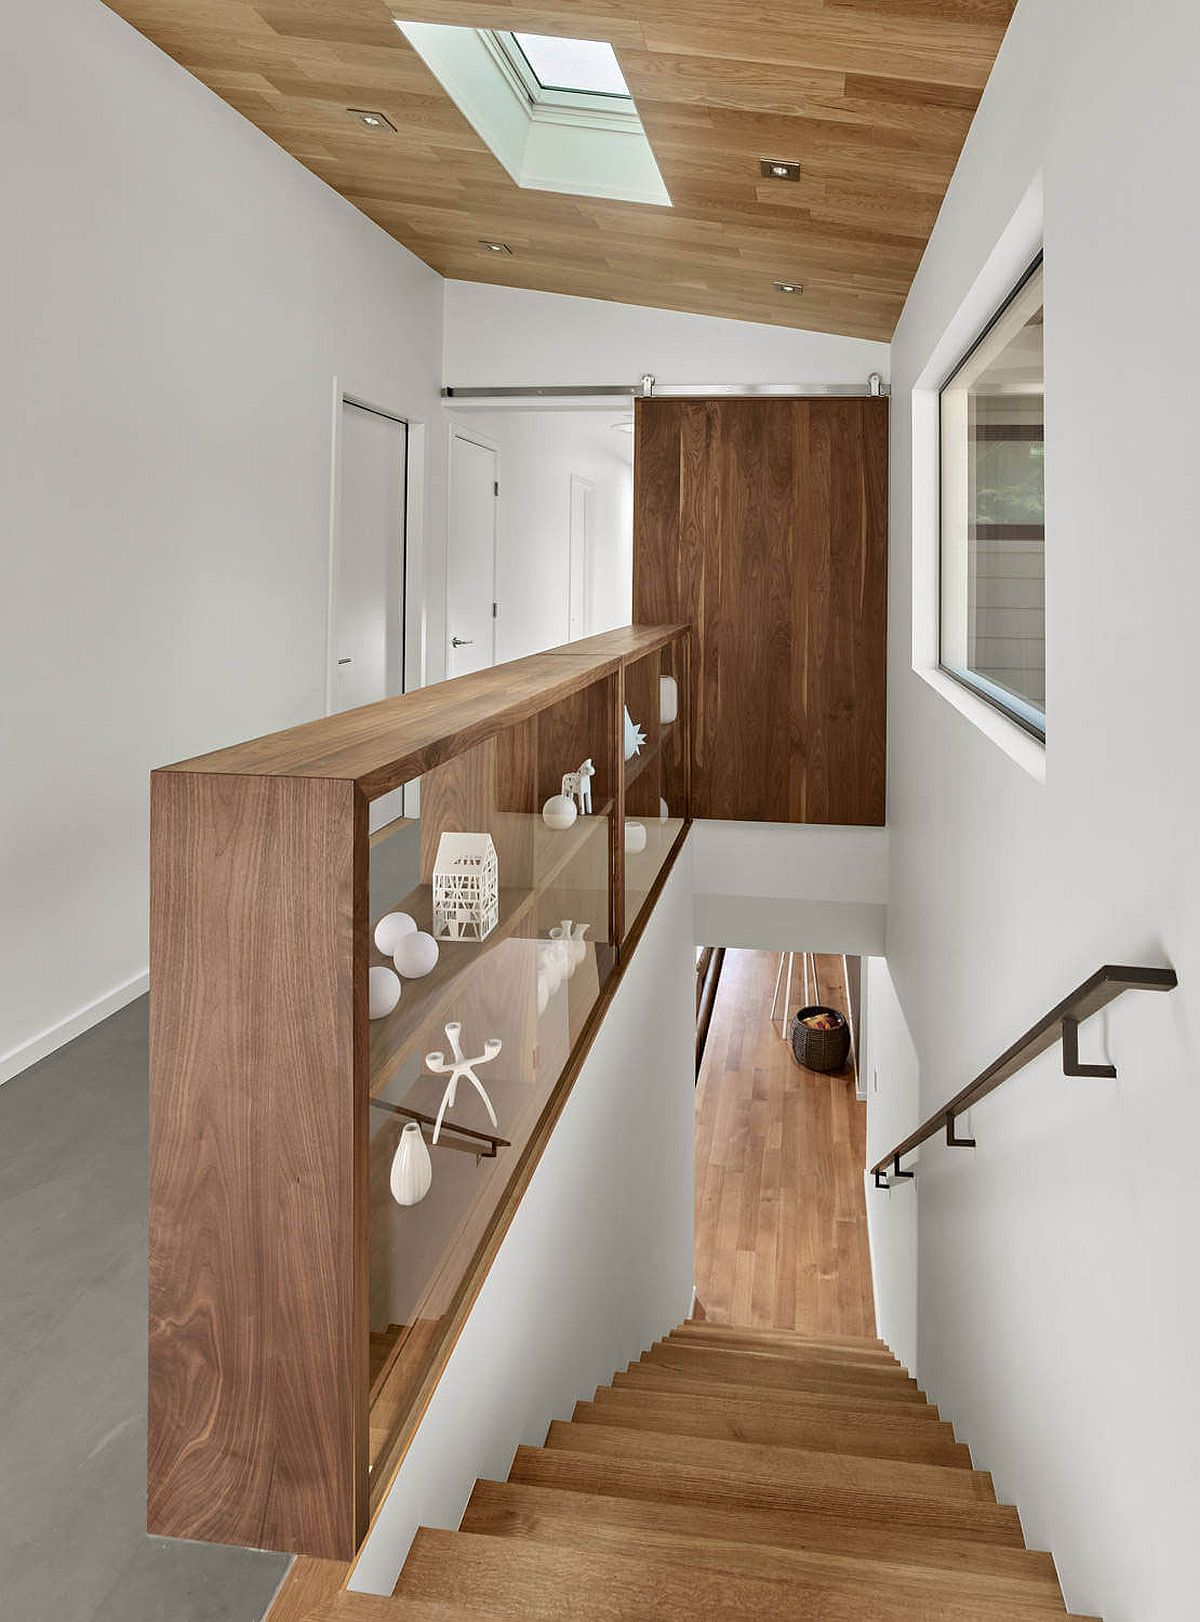 Wooden-shelf-next-to-the-staircase-also-doubles-as-a-railing